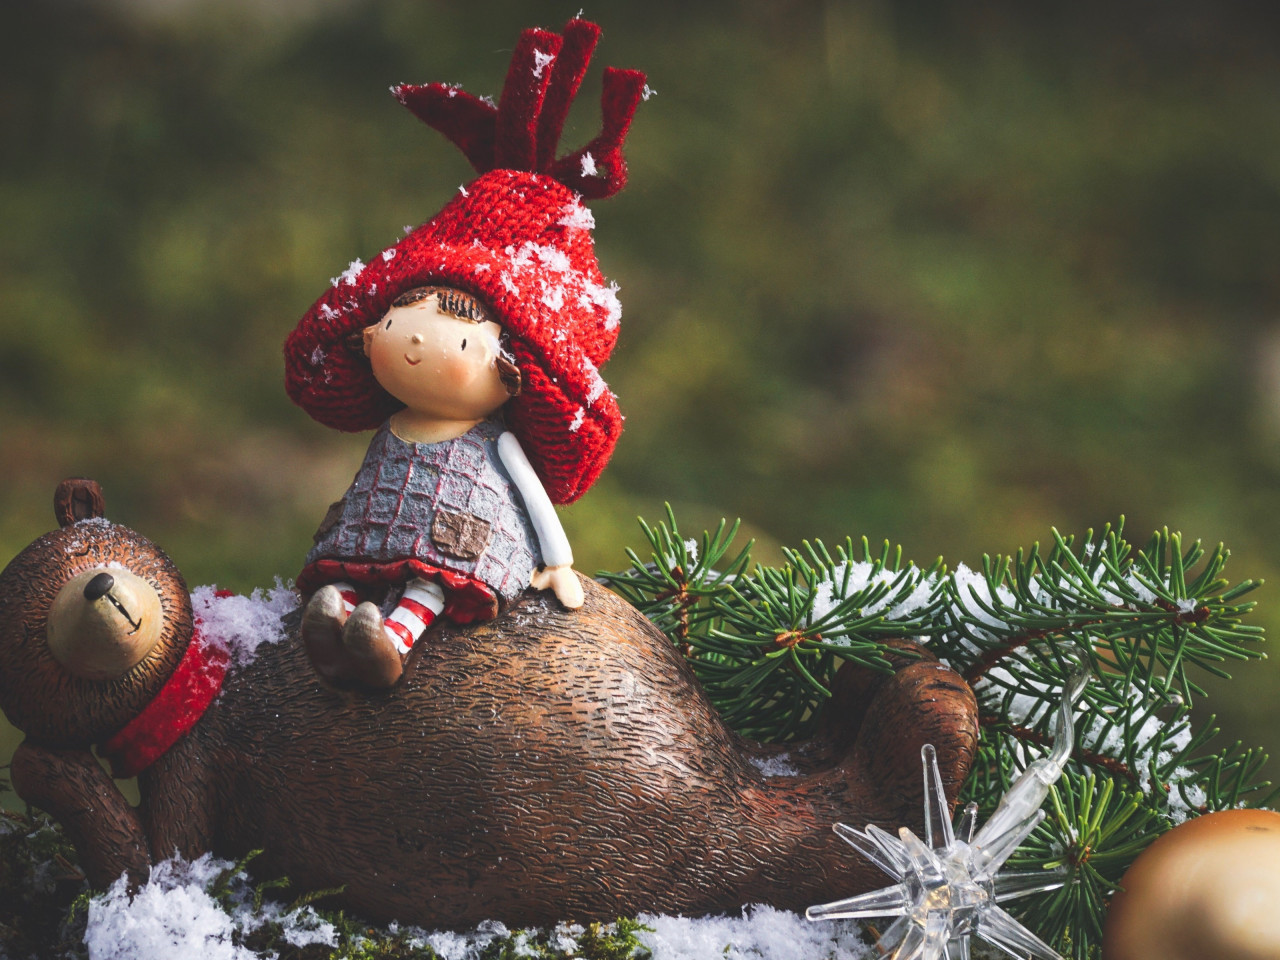 Cute Christmas decoration | 1280x960 wallpaper